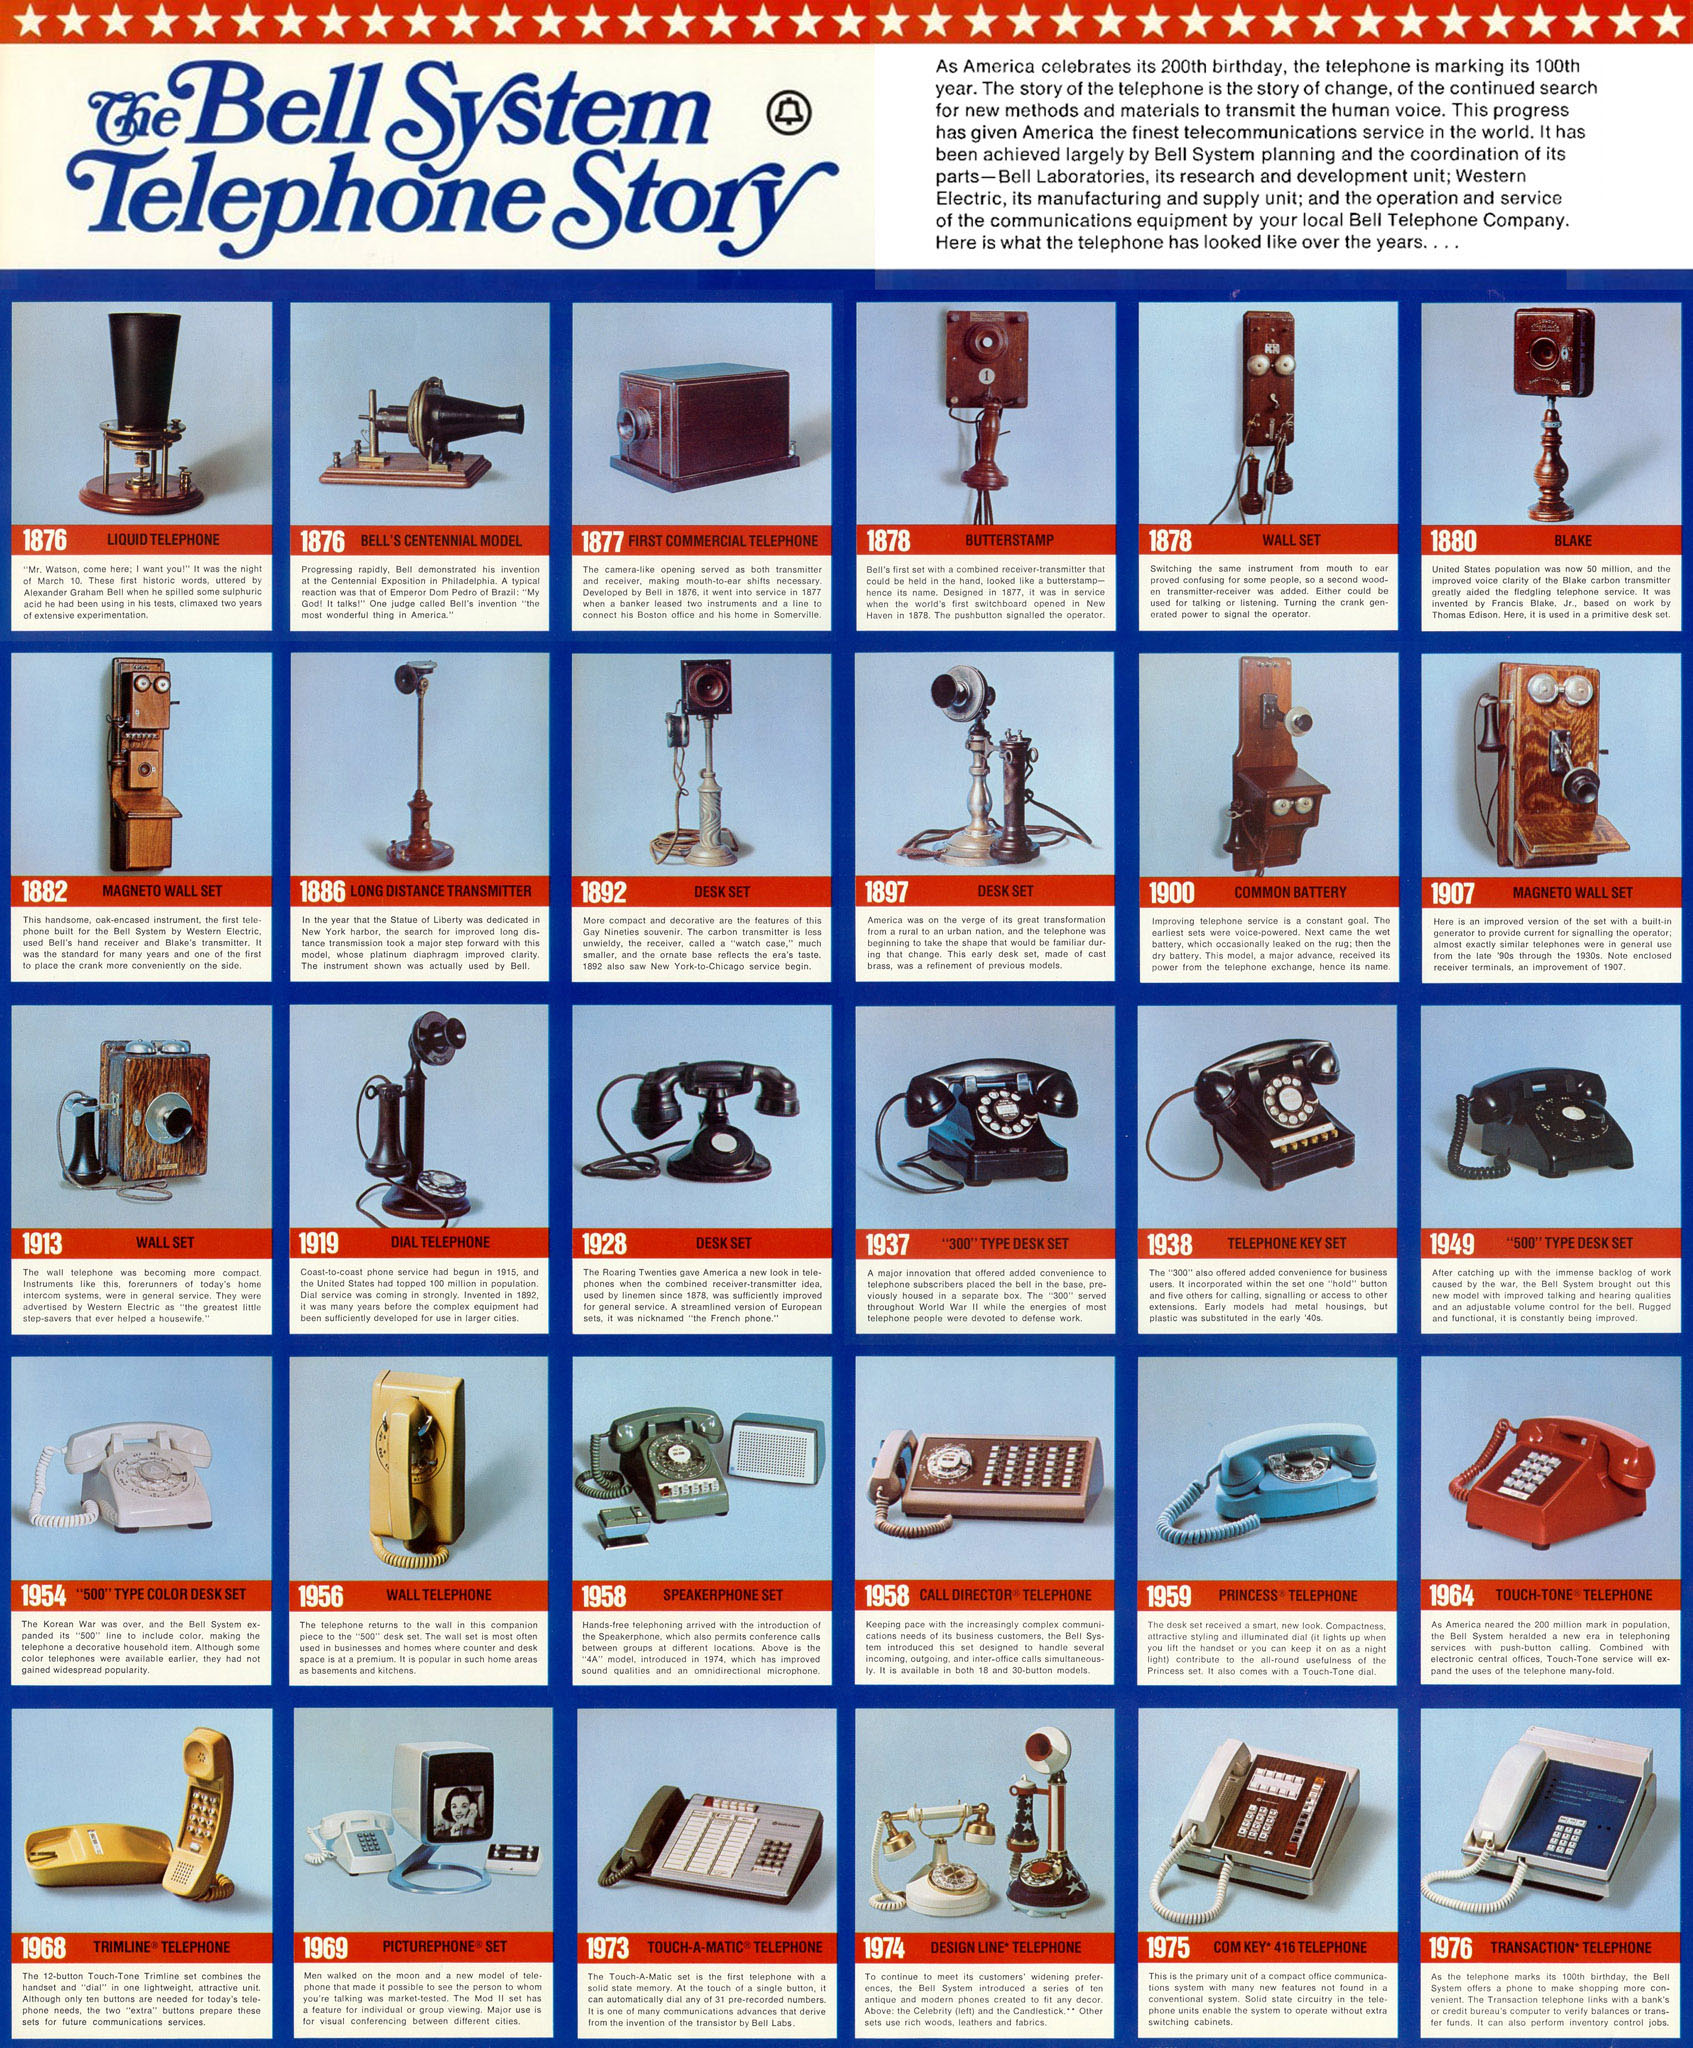 history of the telephone How letters were used for digits in united kingdom telephone exchange names and dialling codes up to the 1960's.